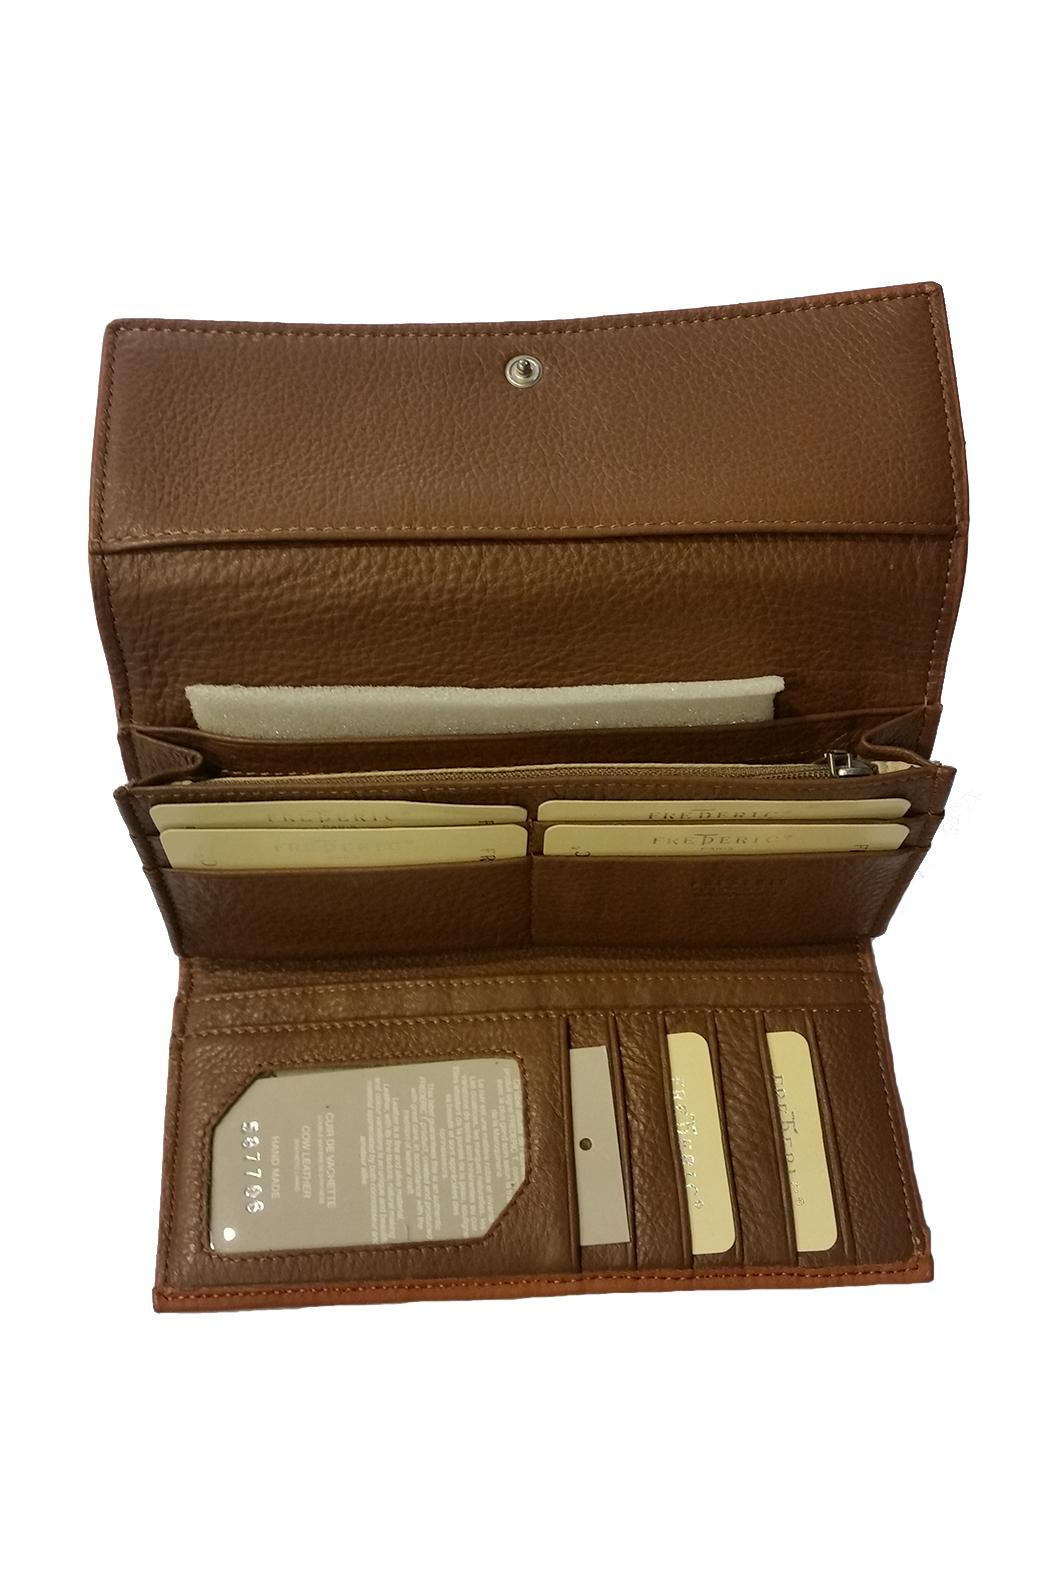 FREDERIC PARIS Brown Leather Wallet - Front Full Image